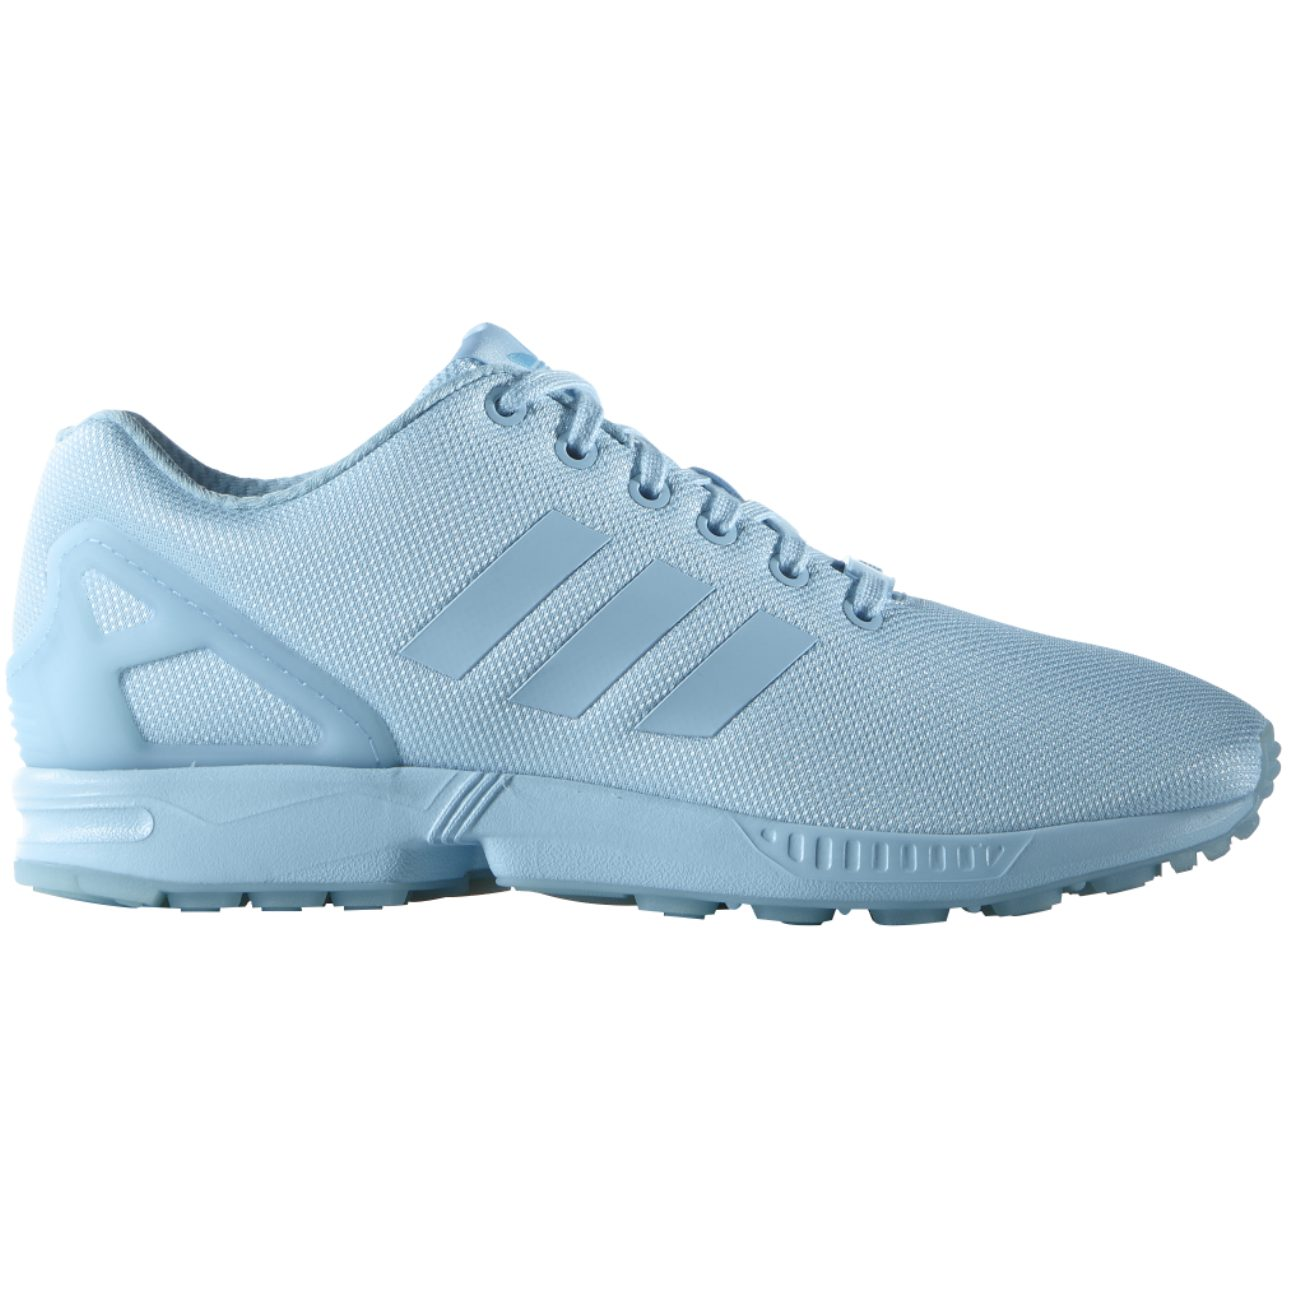 adidas originals zx flux schuhe turnschuhe sneaker damen herren ebay. Black Bedroom Furniture Sets. Home Design Ideas